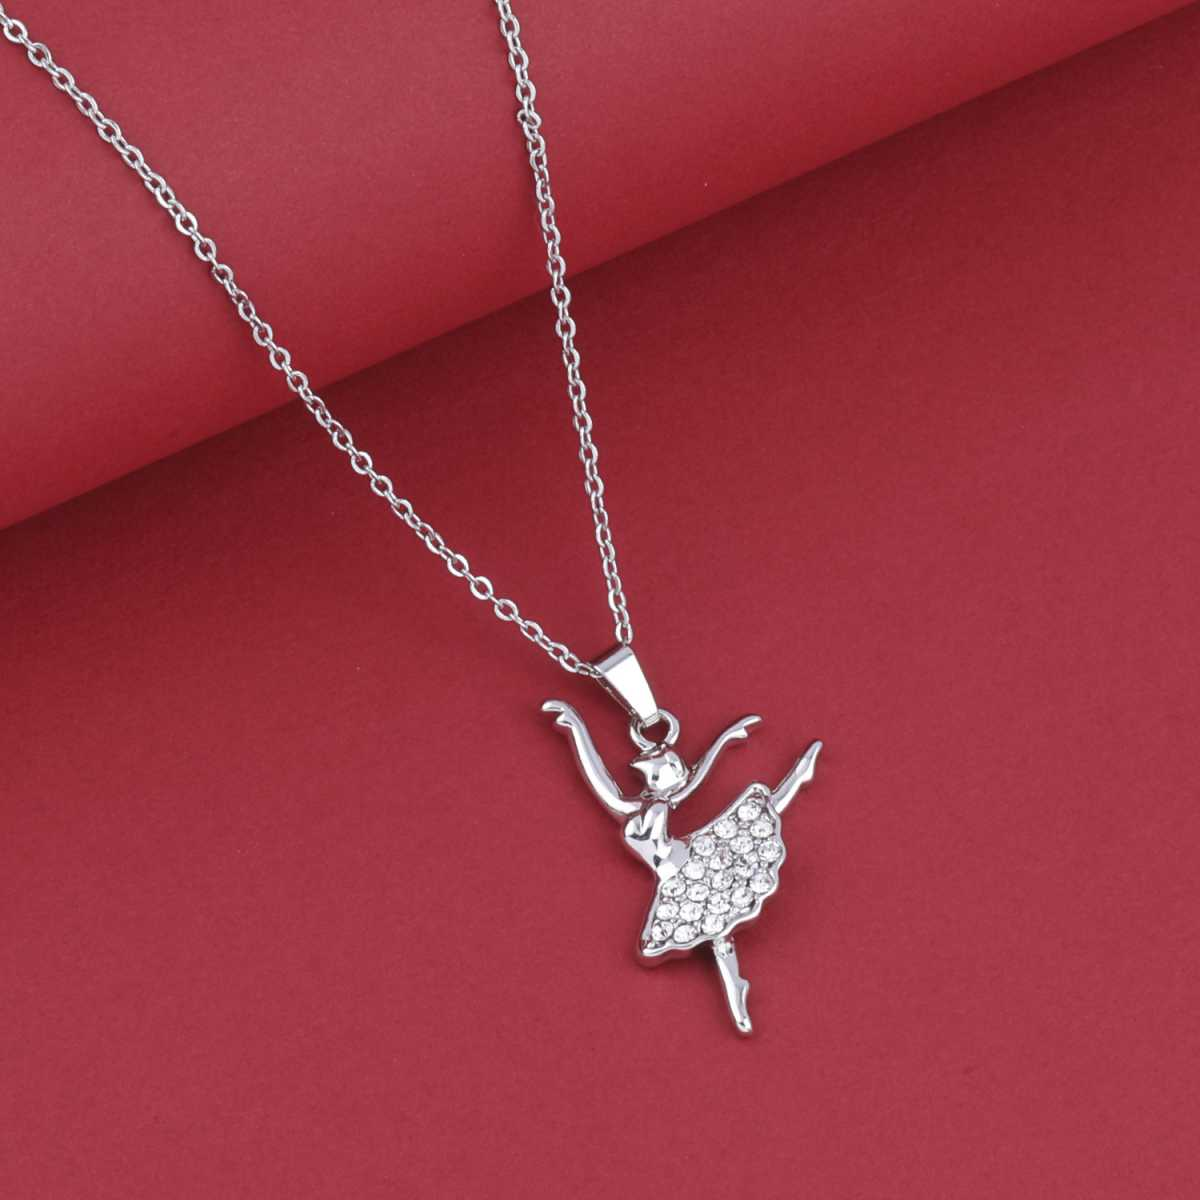 SILVER SHINE Gold Plated Delicated Chain With Guitar Shape Solitaire Diamond Pendant For Women